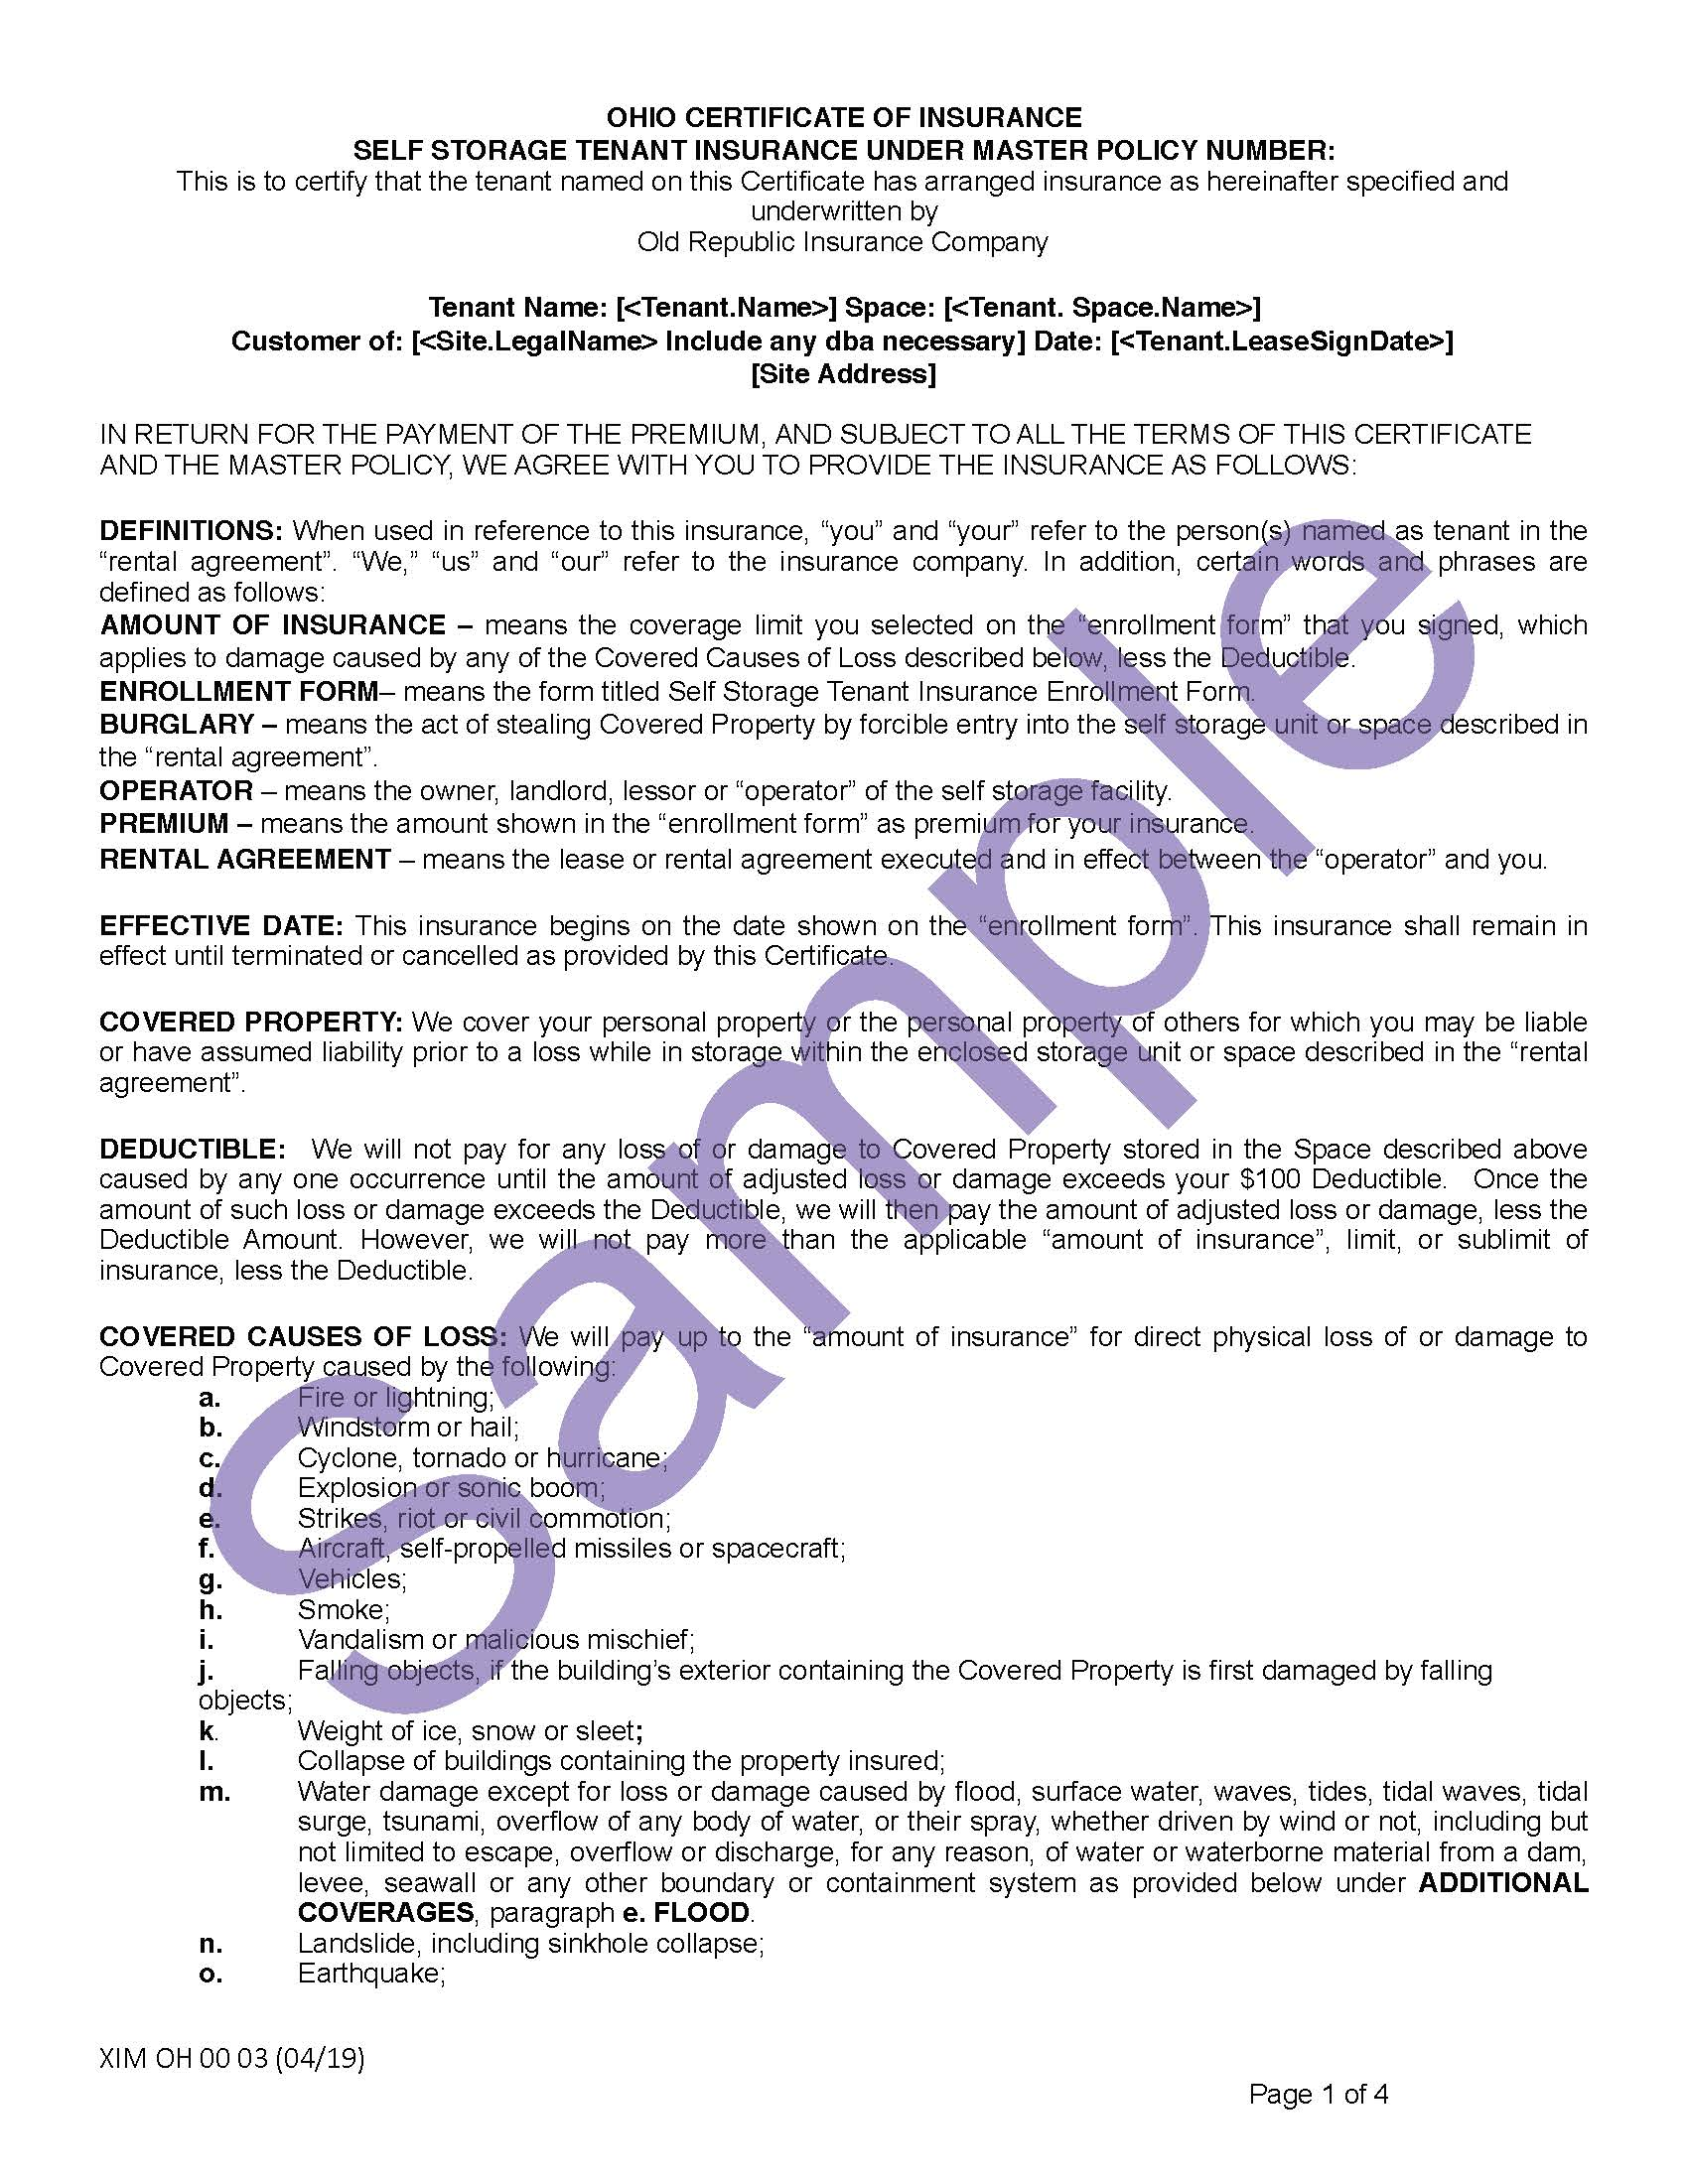 XIM OH 00 03 04 19 Ohio Certificate of InsuranceSample_Page_1.jpg